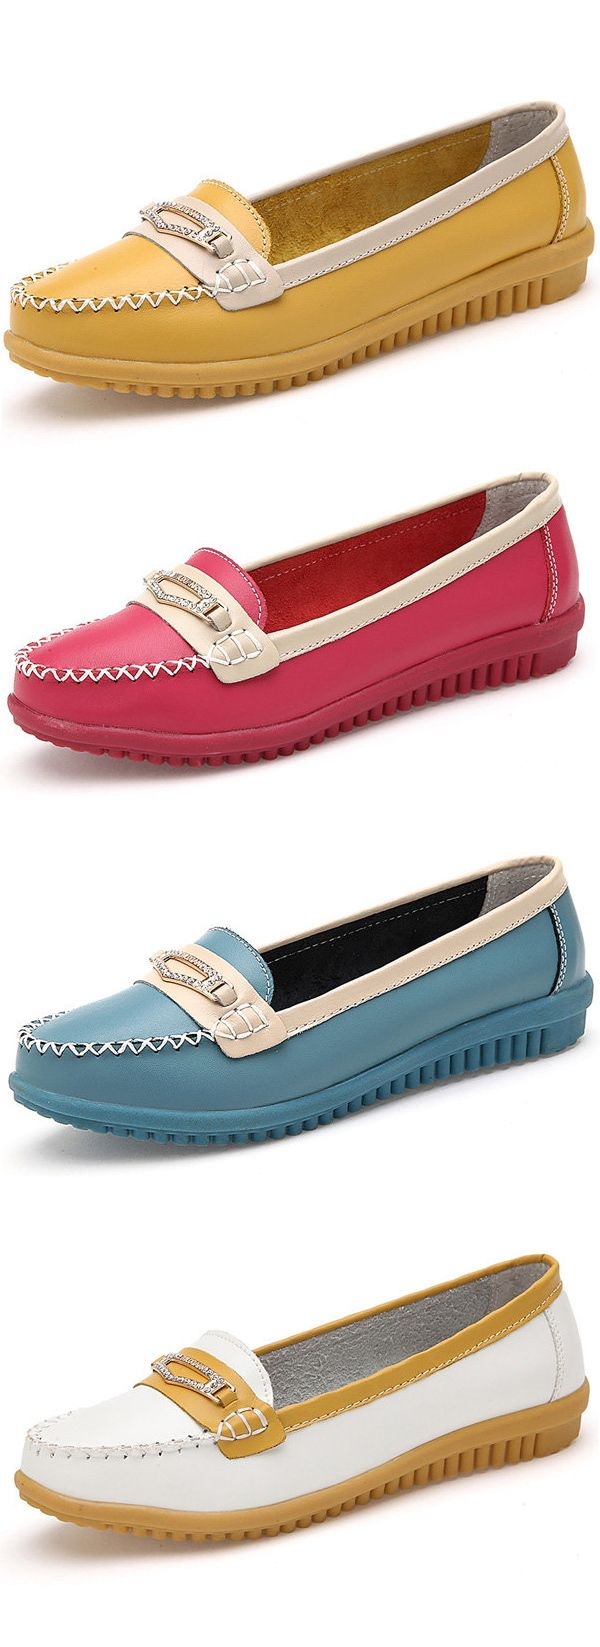 Women Casual Leather Shoes Colors Pointed Toe Flats Soft Sole Slip On Leather Loafer Shoes Casual Leather Shoes Leather Shoes Woman Shoes Heels Stilettos